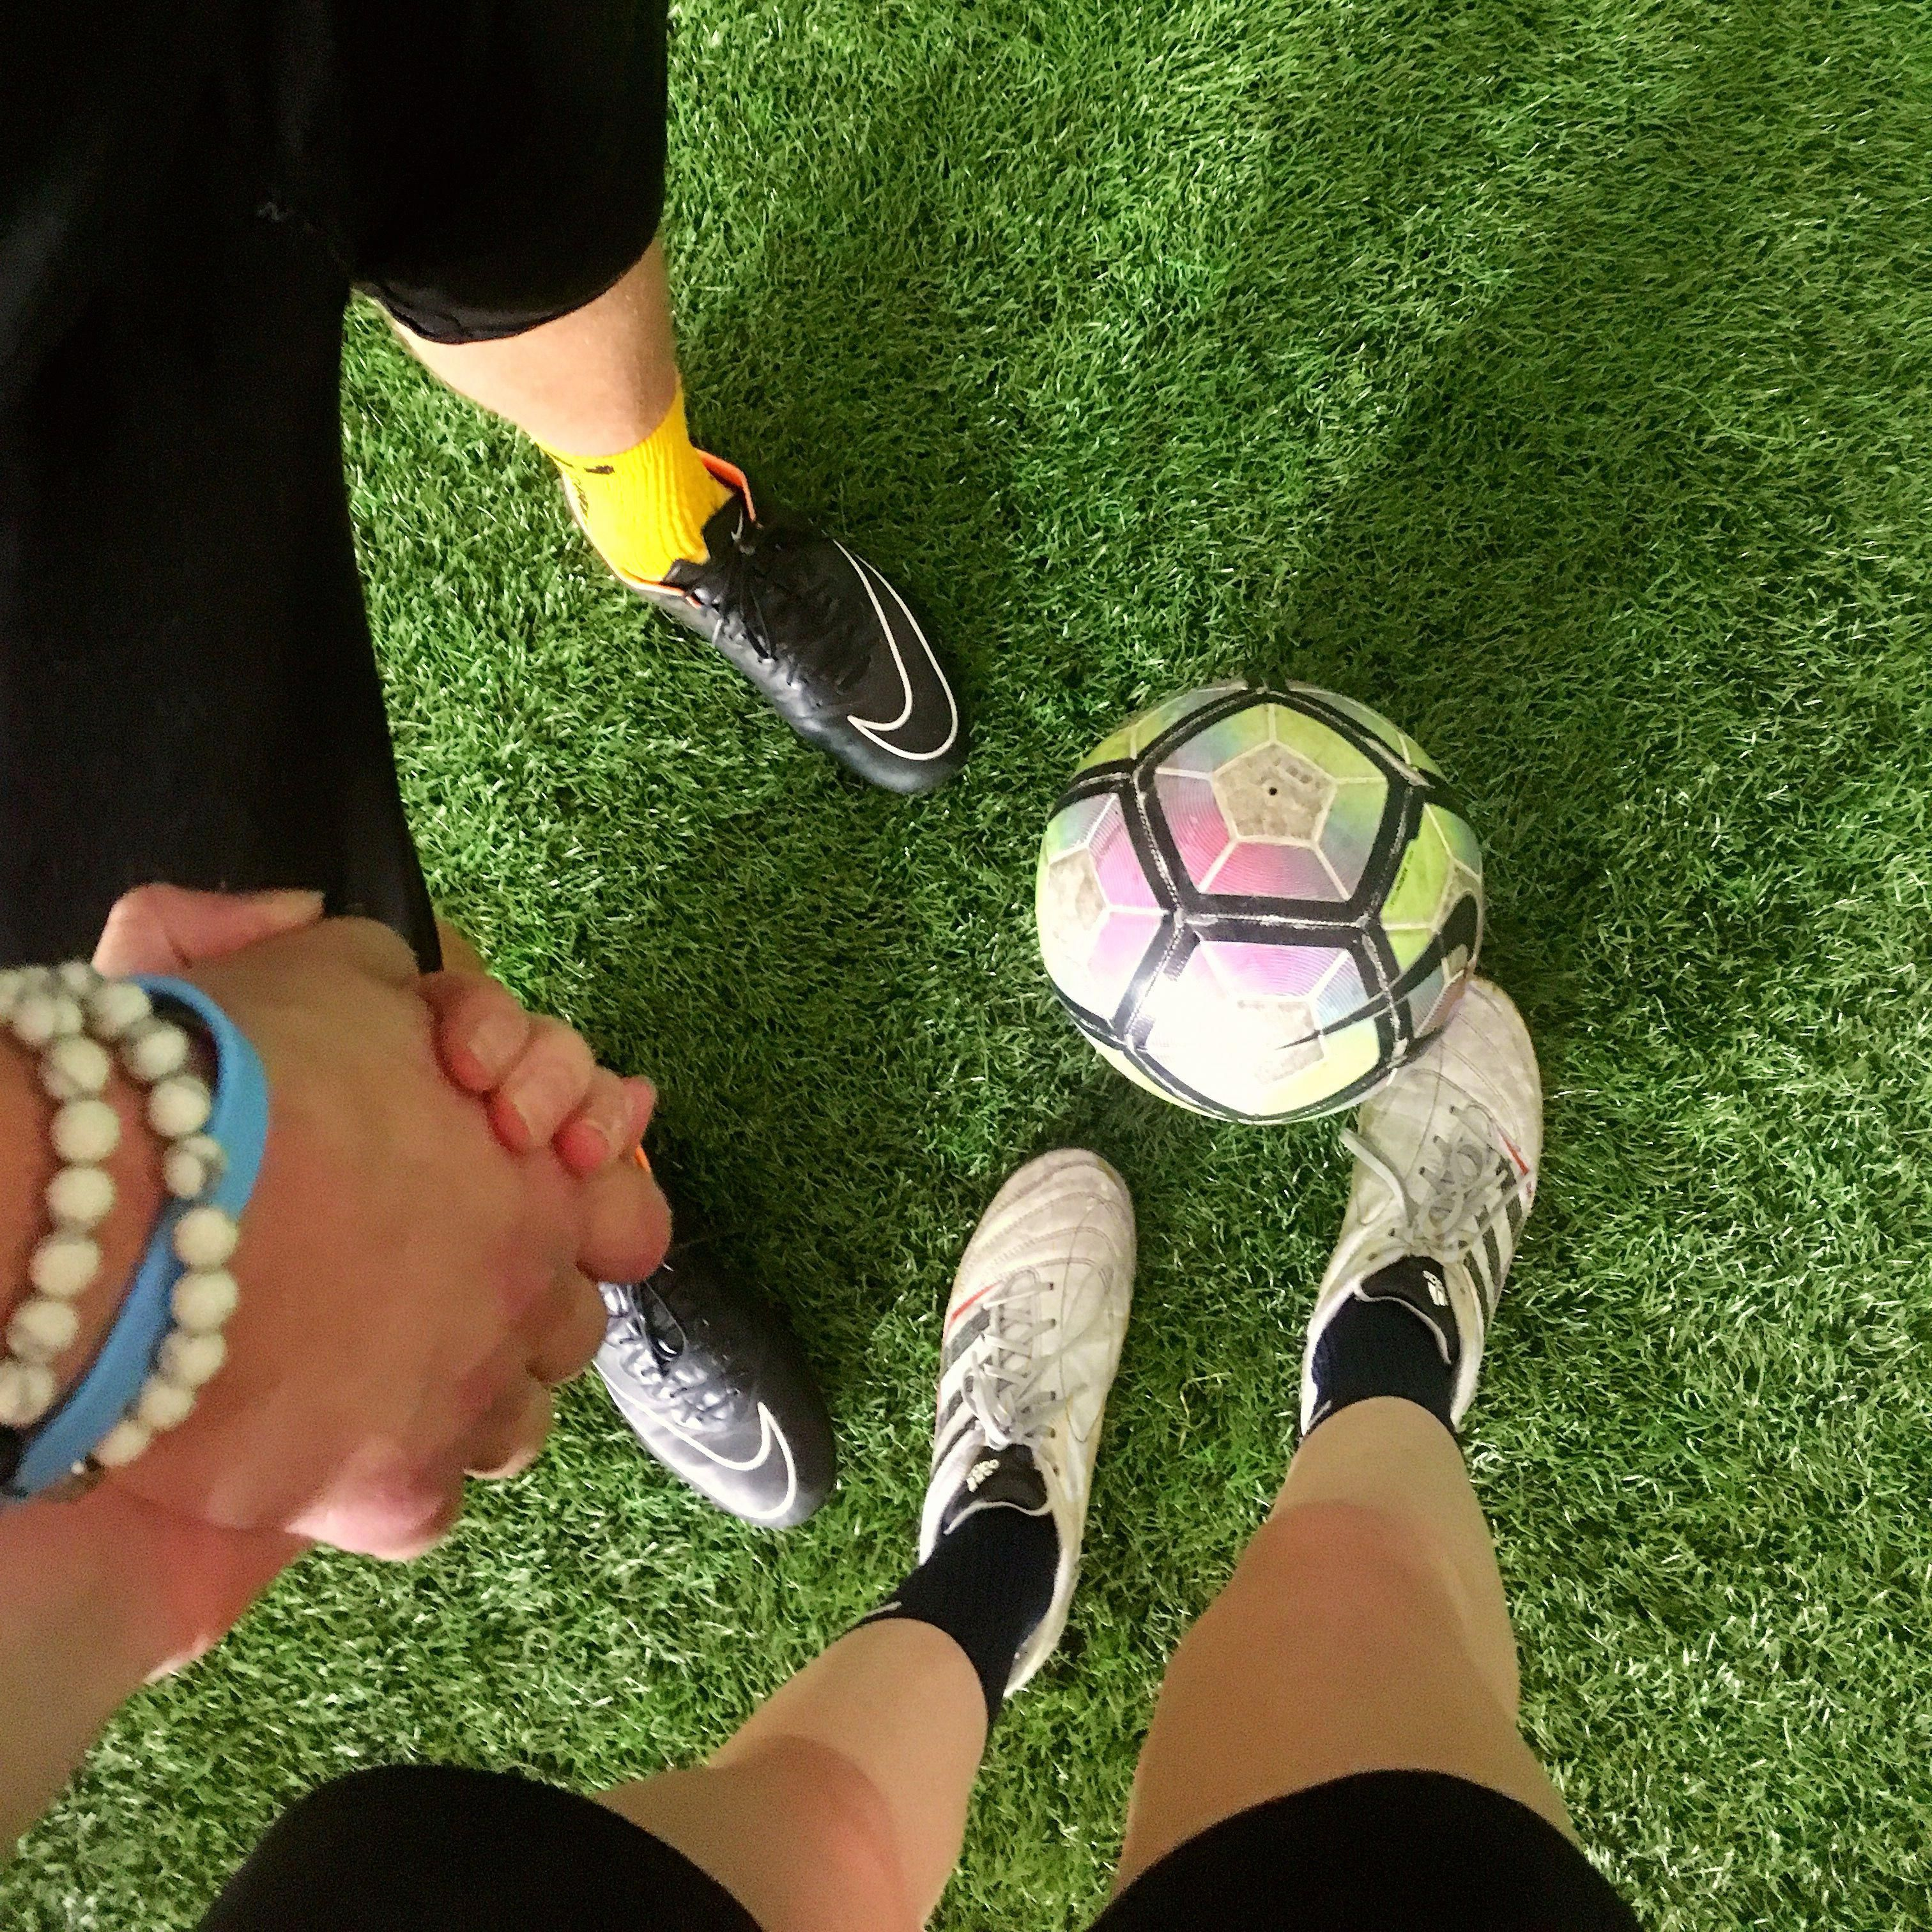 Couple Goals For Soccer Players Do What You Love With The People You Love Soccer Couples Cute Soccer Couples Soccer Relationships